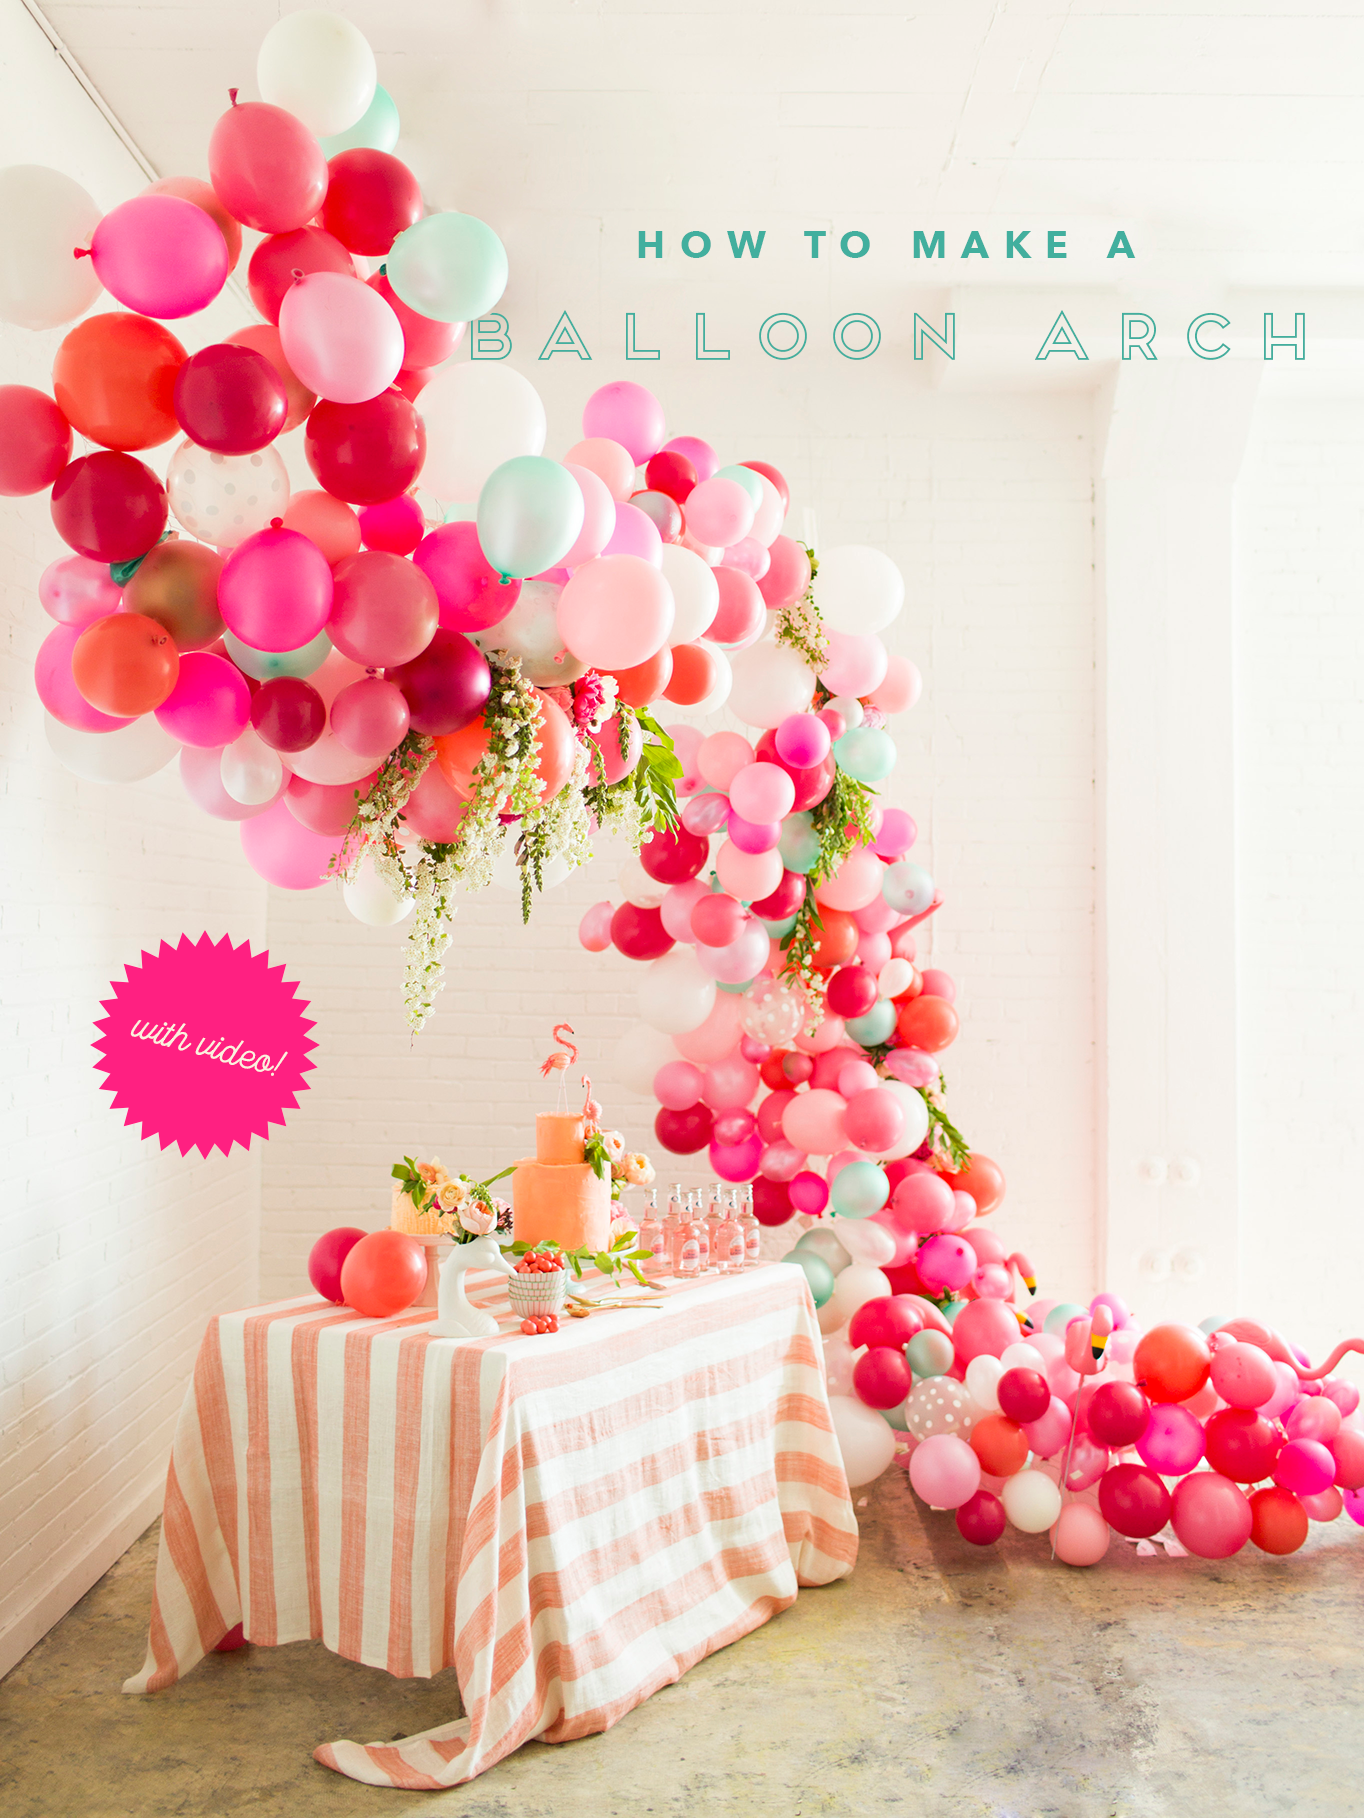 Balloon arch tutorial video